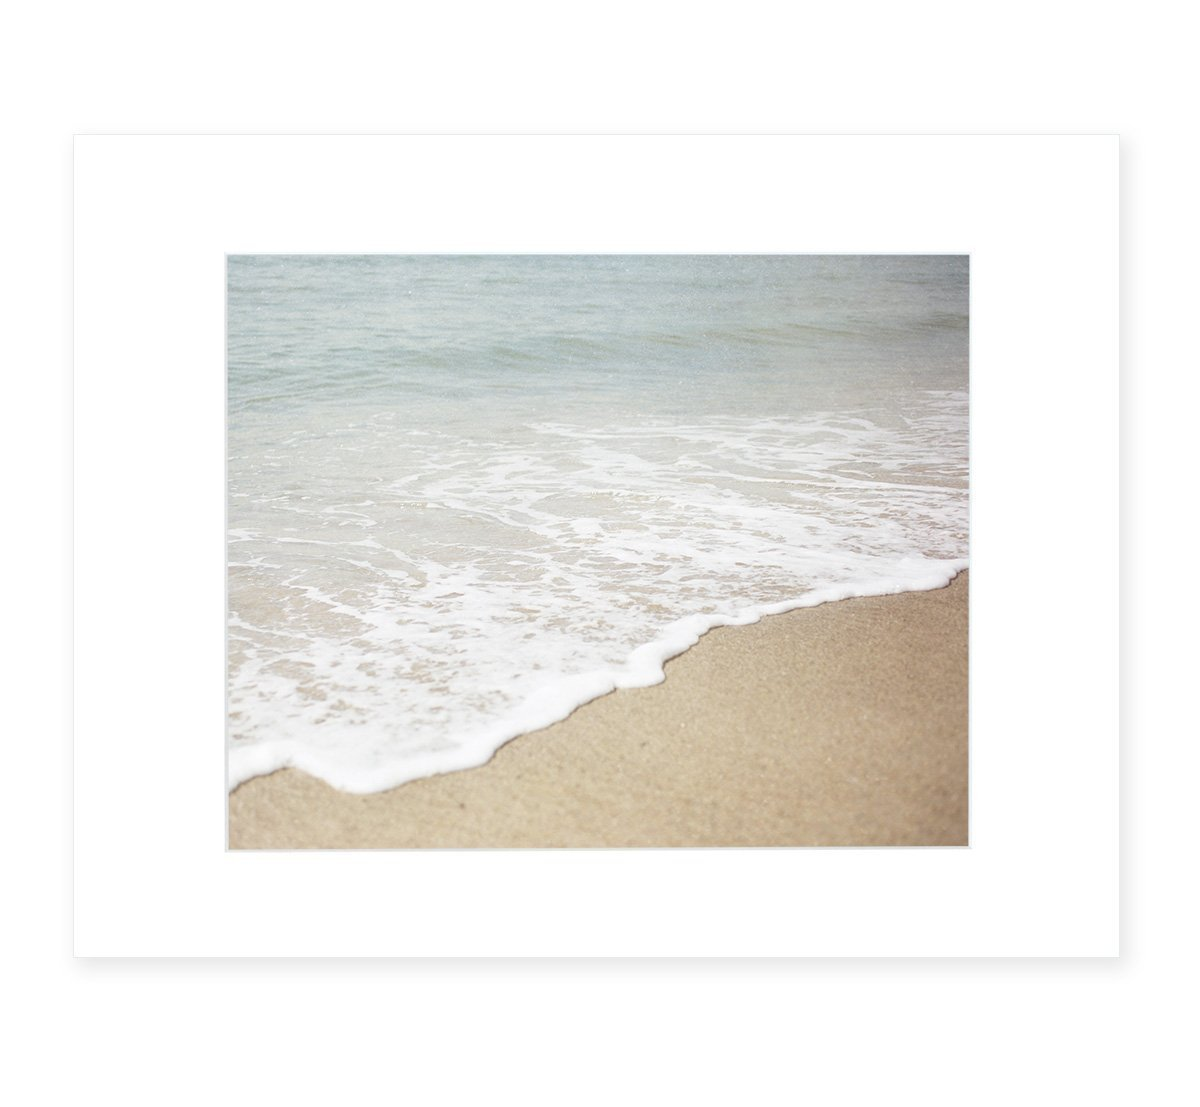 Beach Wall Art, Waves Foaming Ocean Picture, California Coastal Decor, 8x10 Matted Photographic Print (fits 11x14 frame) 'Chasing Surf' by Offley Green